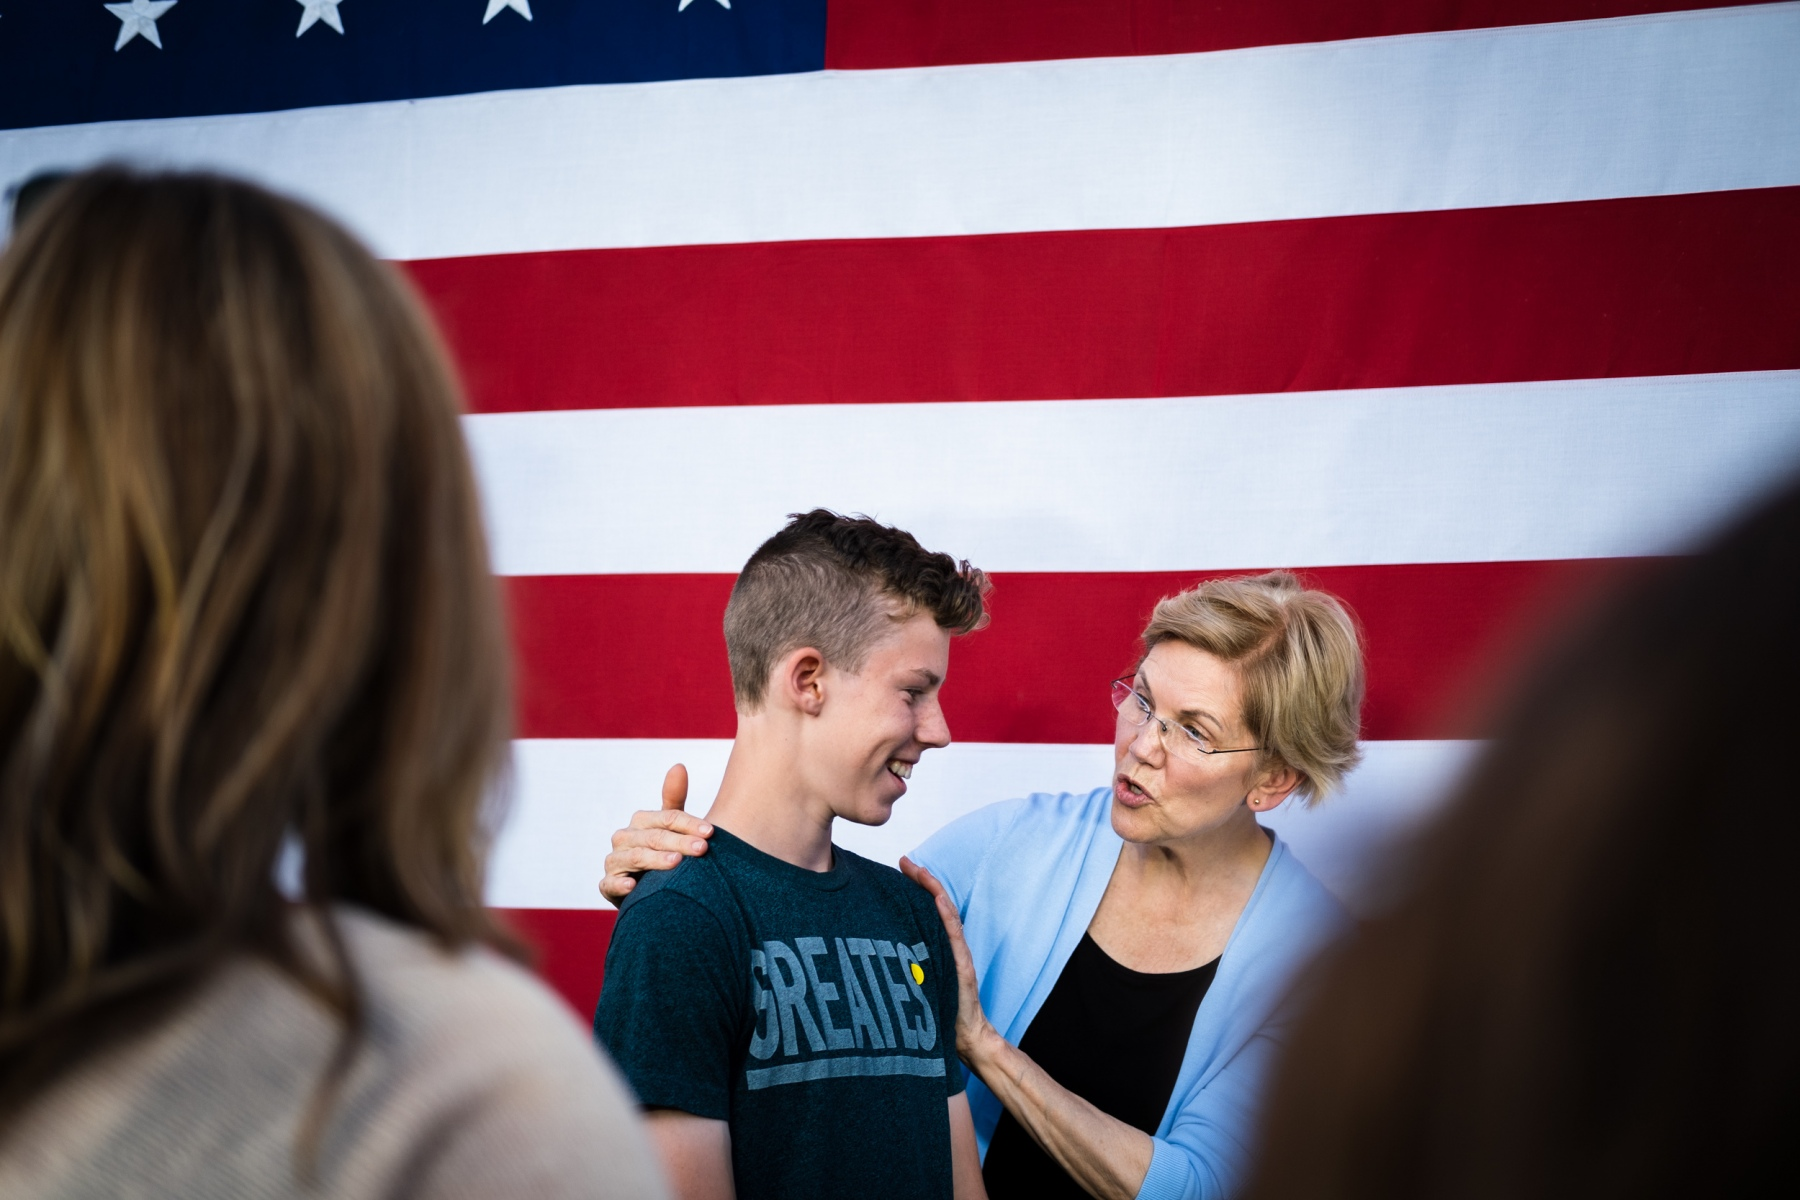 Senator Warren speaks to a young supporter while taking selfies with the crowd after a preseidential campaign rally at Macalester College in Minnesota on August 19th, 2019.